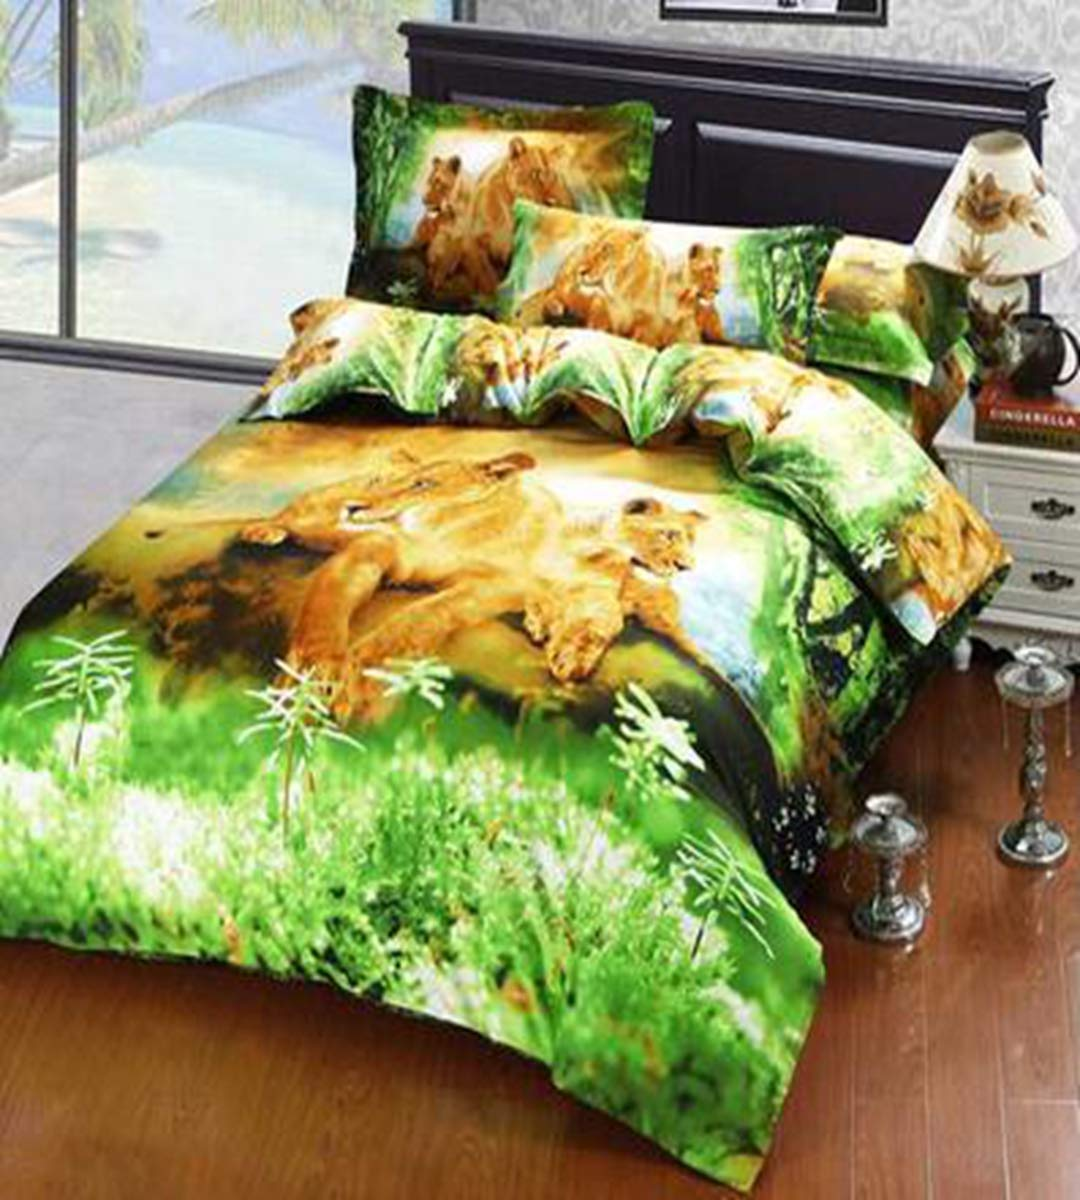 HUROohj 3D,The New Bedding Four Sets,European Style,Bedding Kits( 4 Pcs) for Bed Size Twin/Queen/King,-Queen